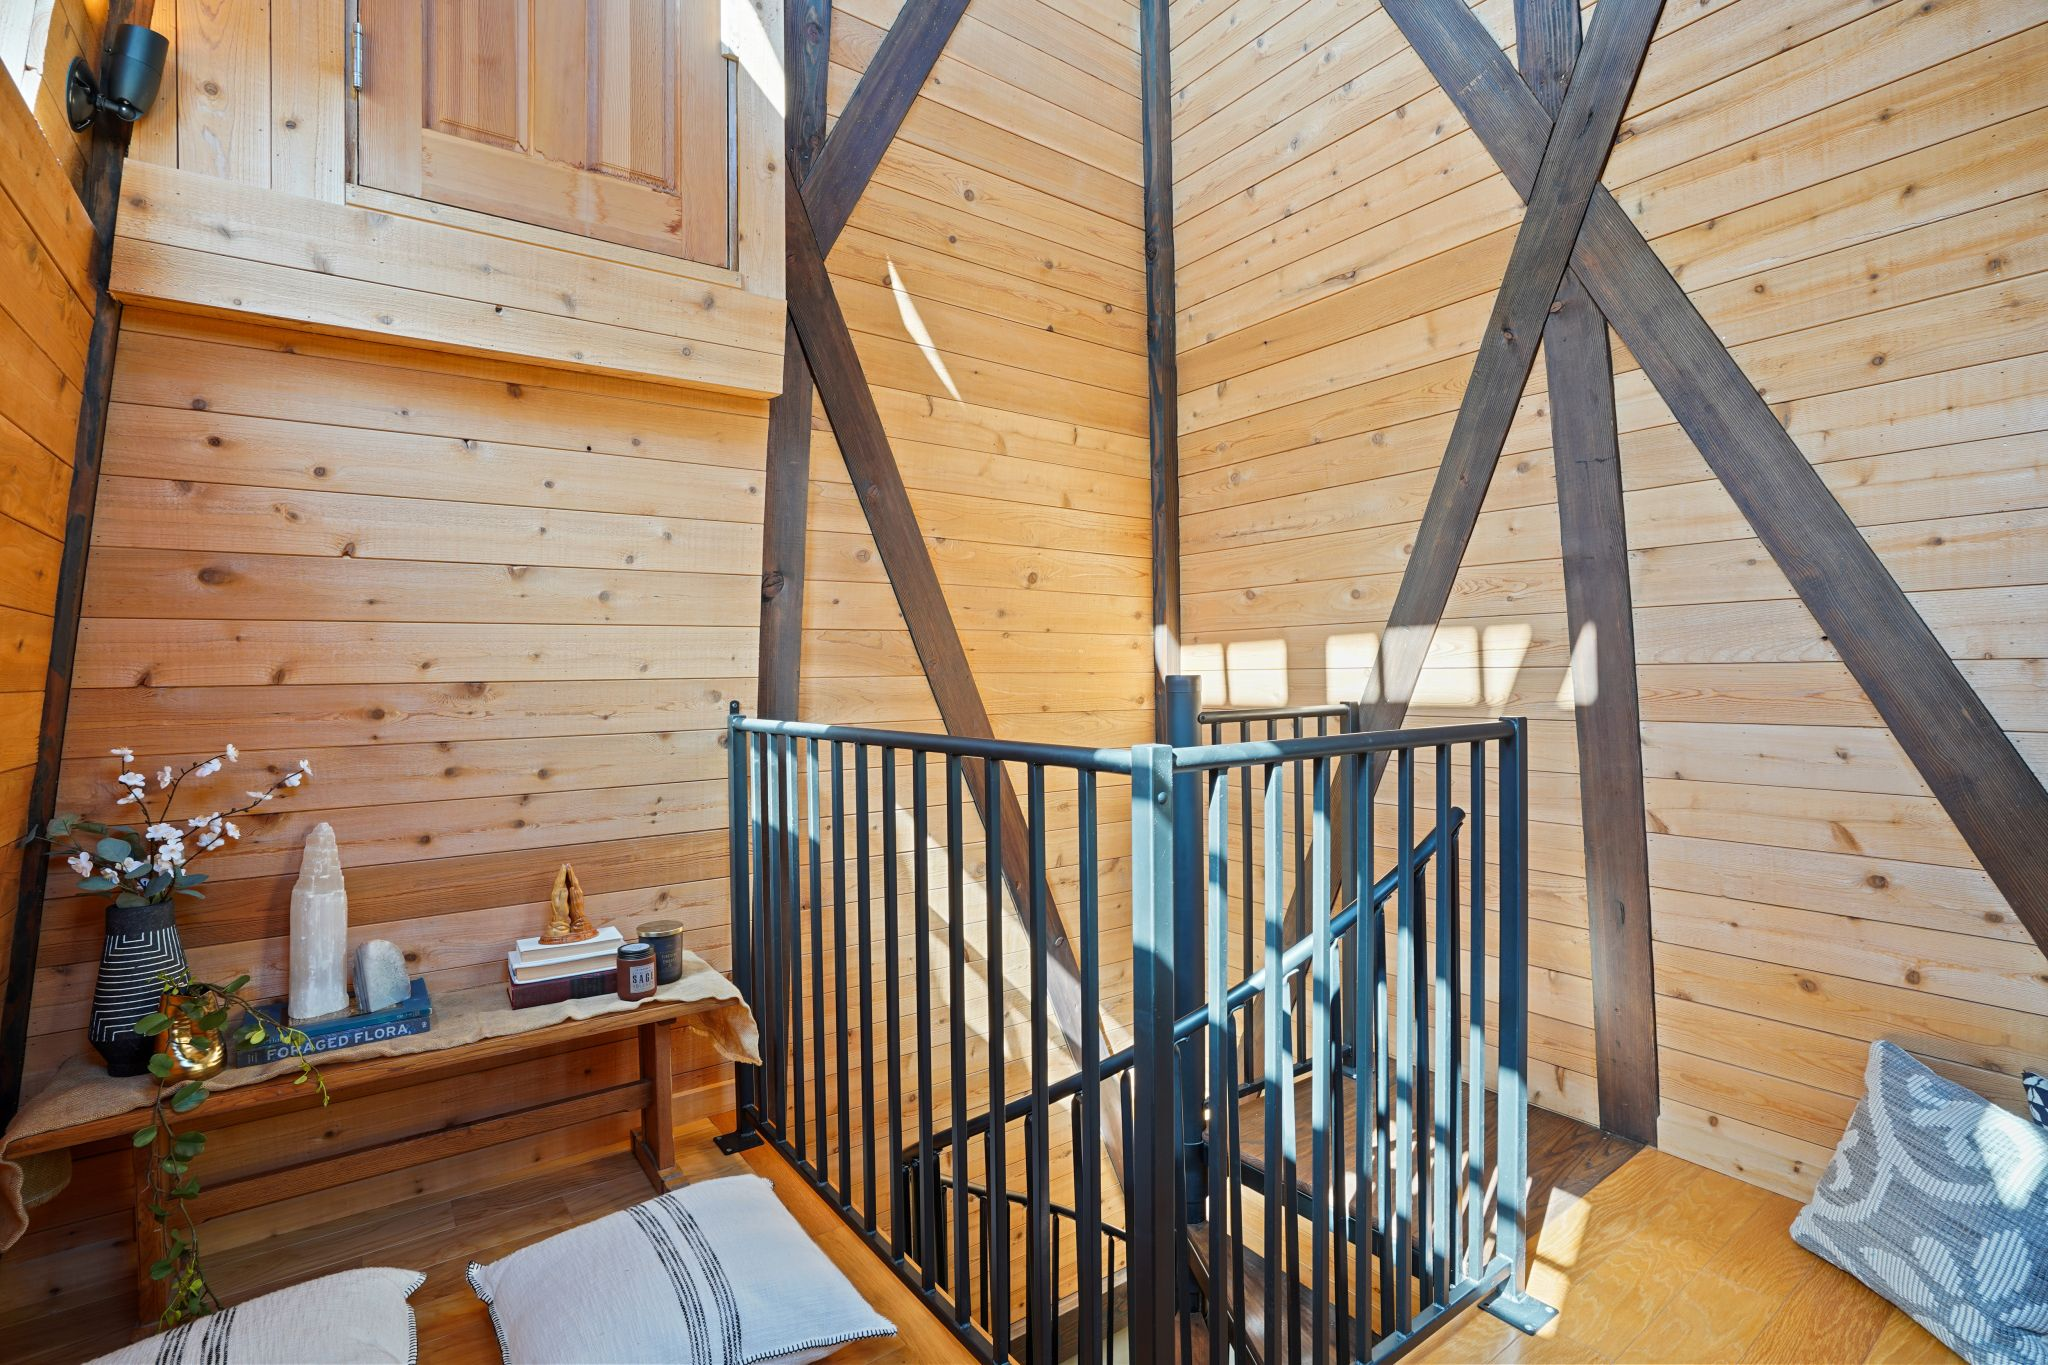 Inside the water tower, exposed beams create a rustic effect.